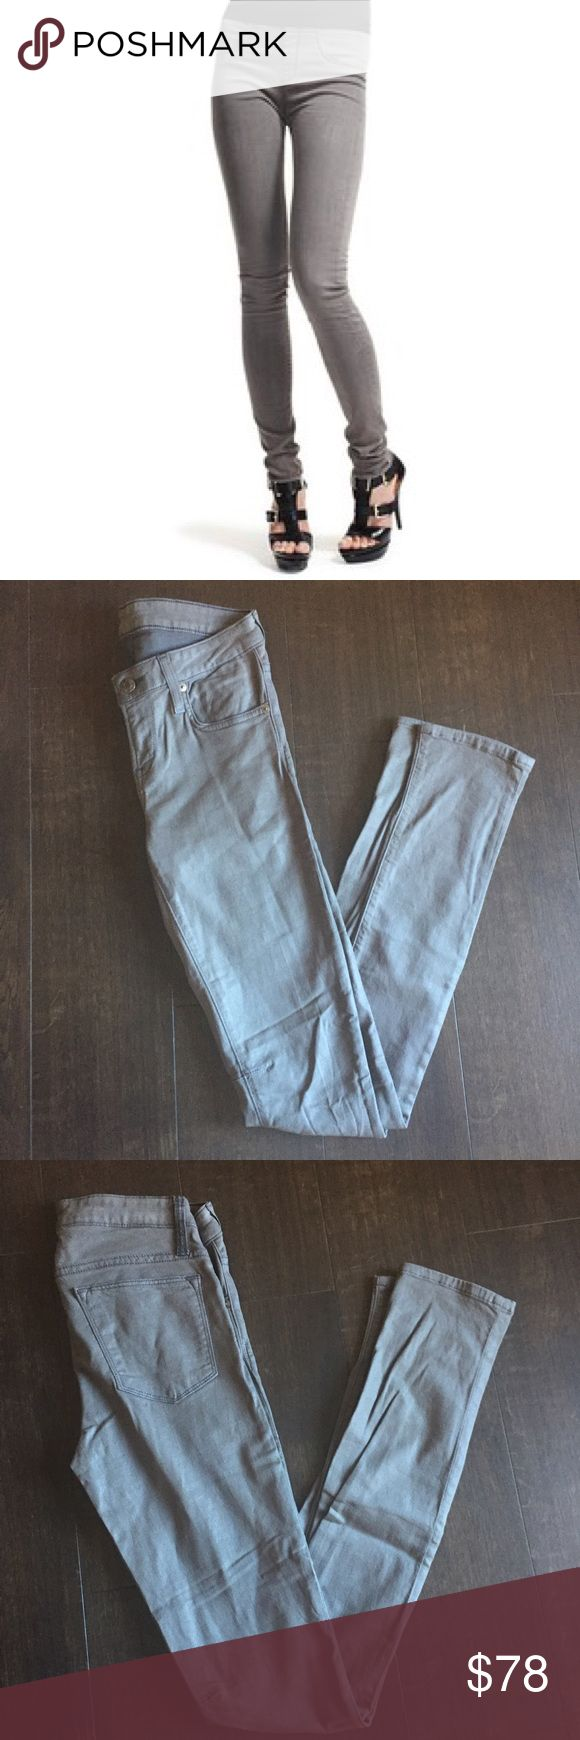 Helmut Lang Wax Coated Jeans / Leggings Helmut Lang wax coated skinny jeans. Super soft and a bit of stretch. Great condition. Offers and questions welcome!! Helmut Lang Jeans Skinny